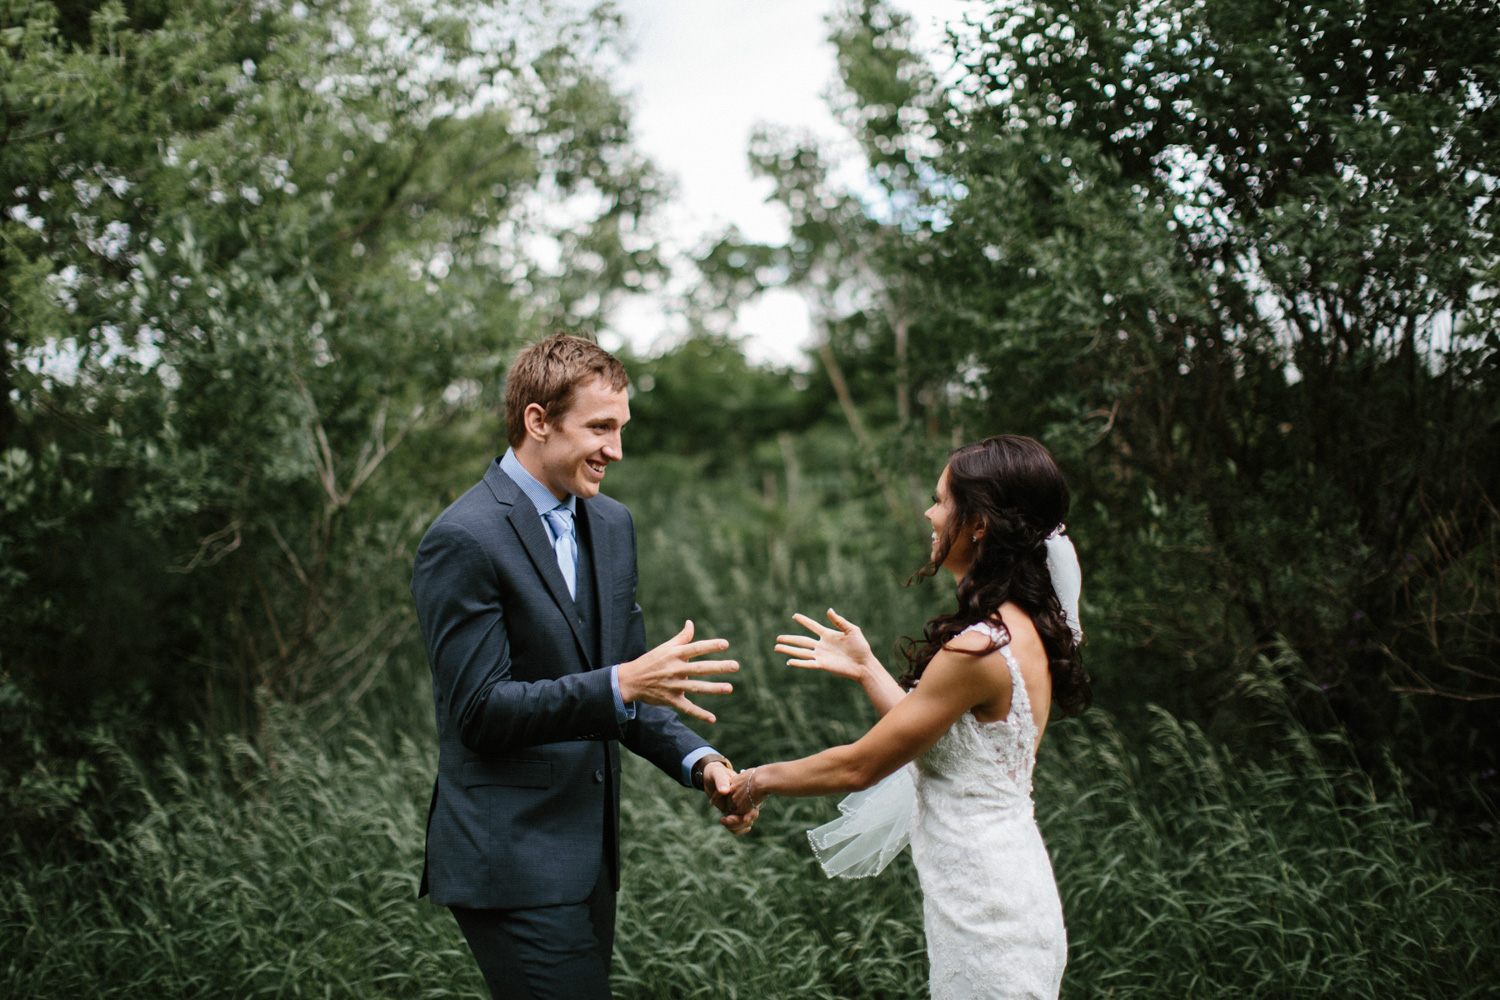 Outdoor_Wedding_SiouxFalls_MaryJoWegnerArboretum_Photographer_Calli&Jon_045.jpg